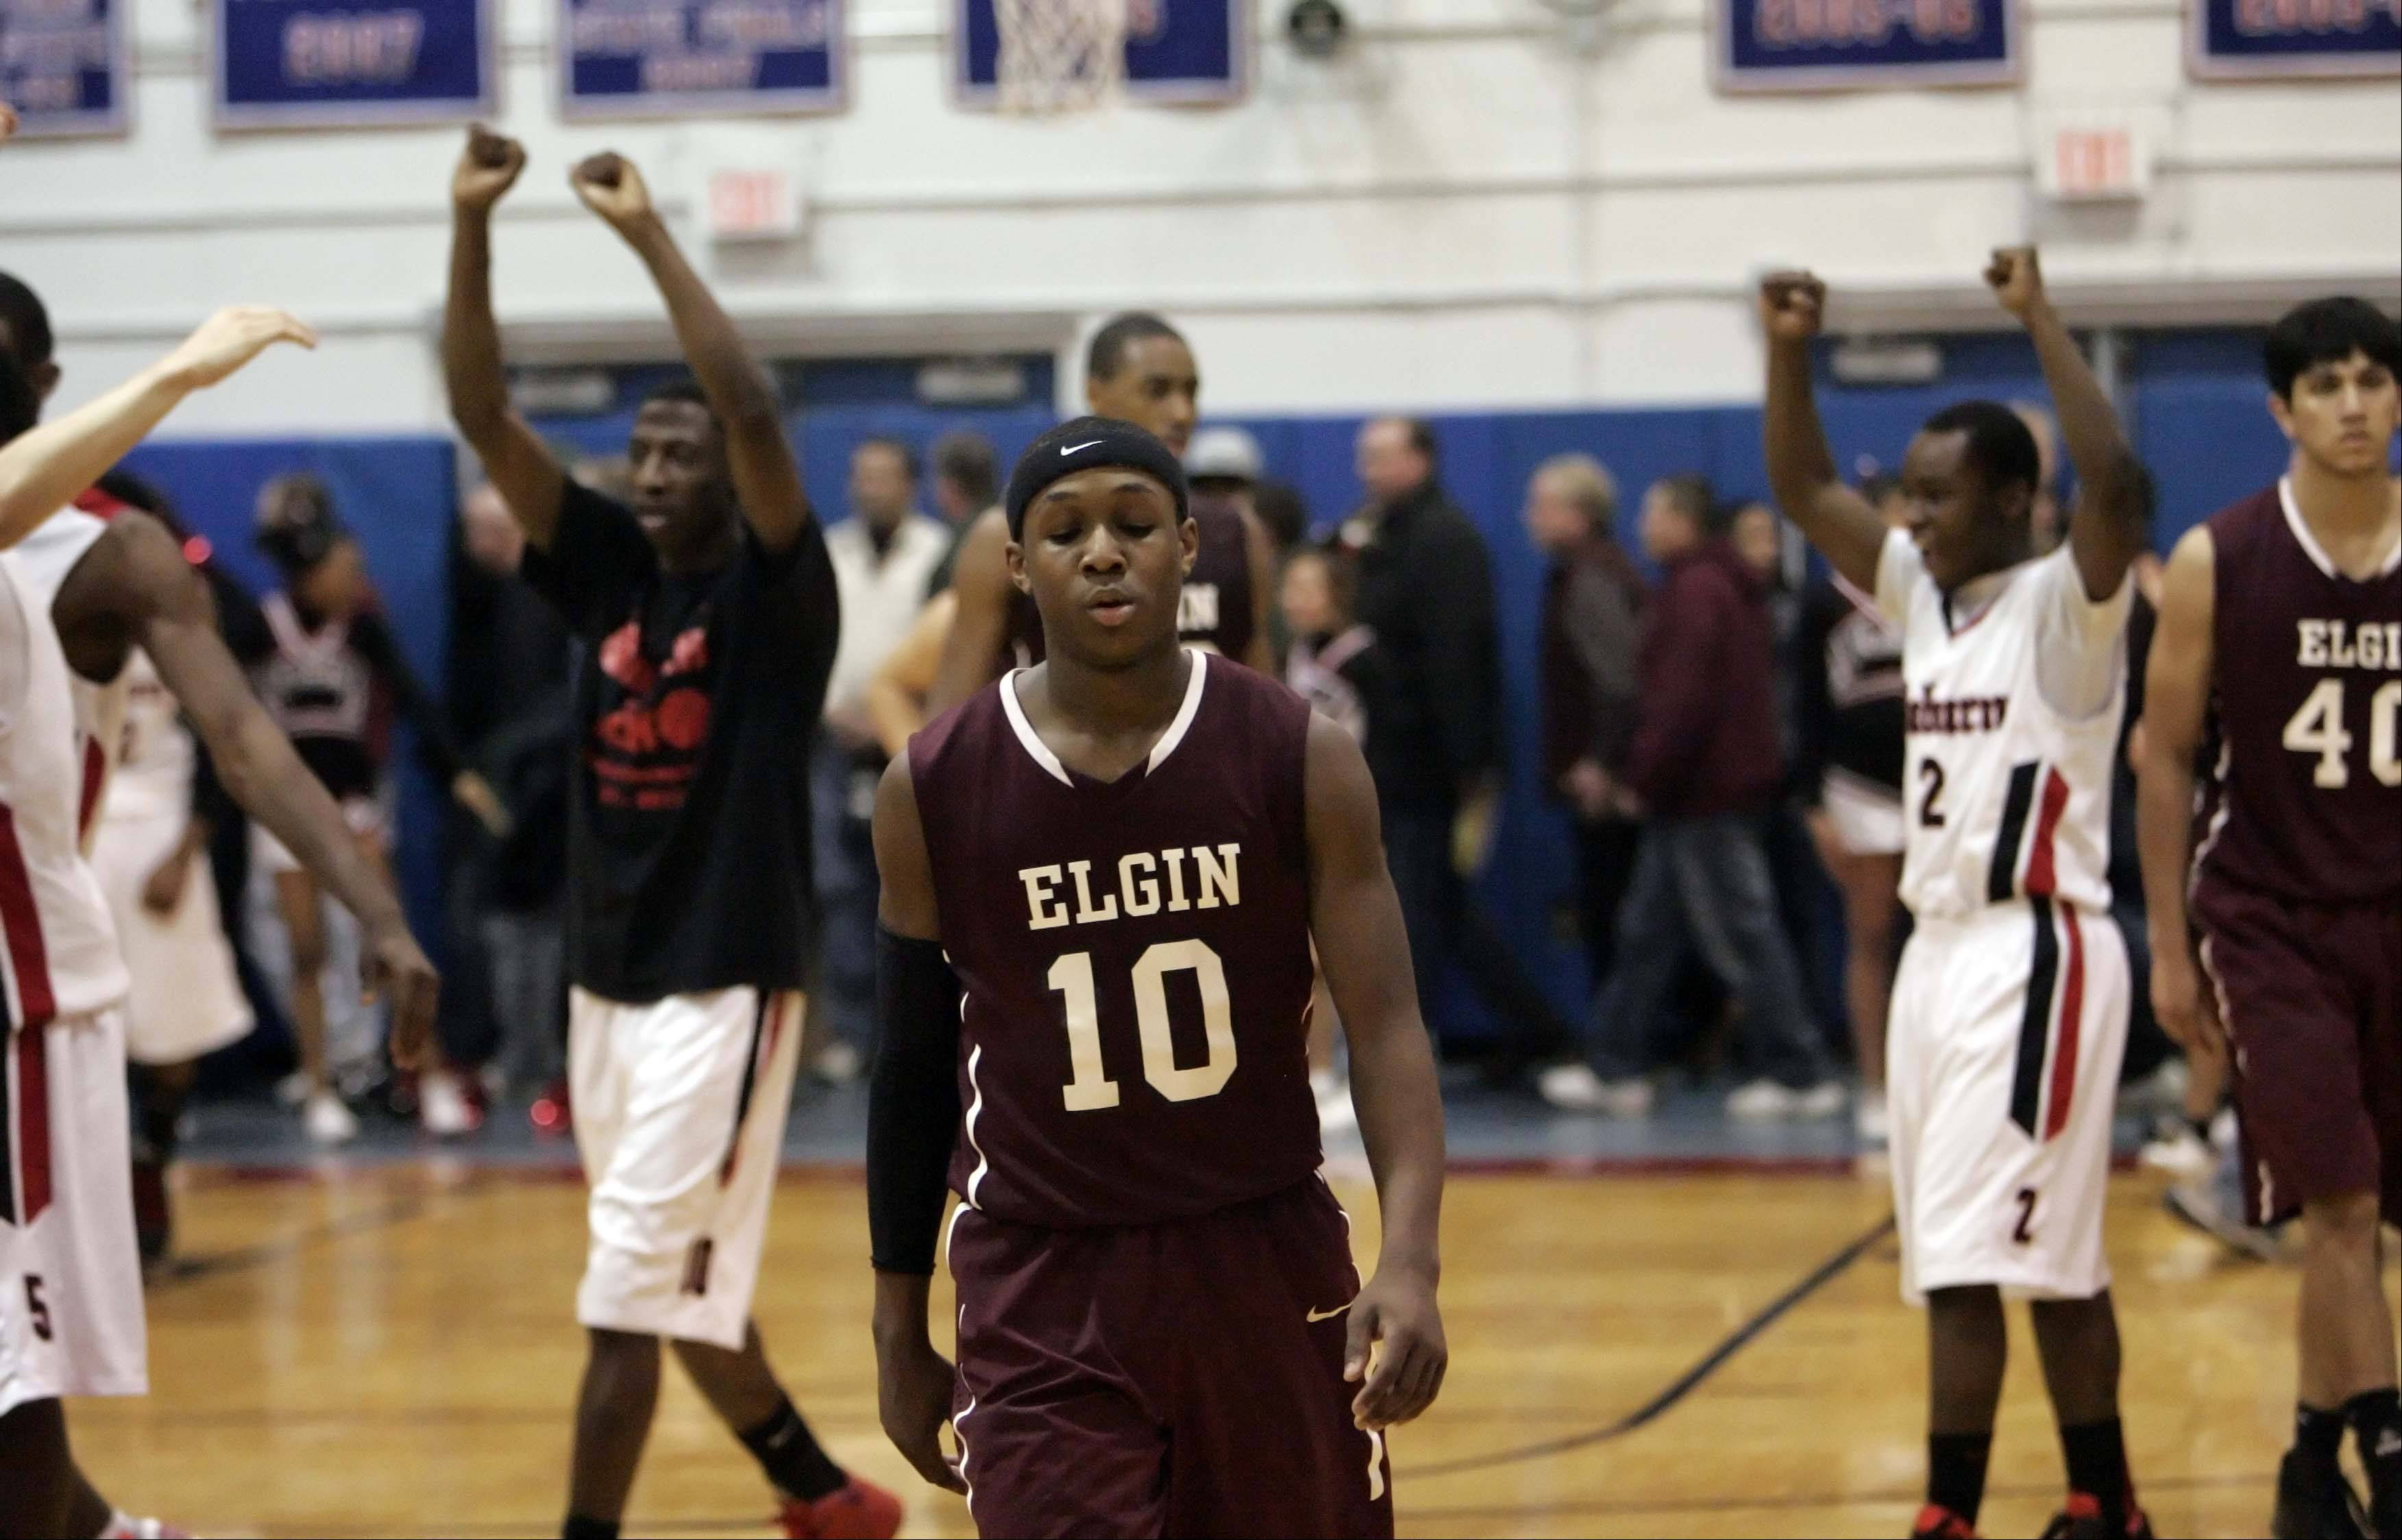 Elgin wing Arie Williams walks off the court after the game.